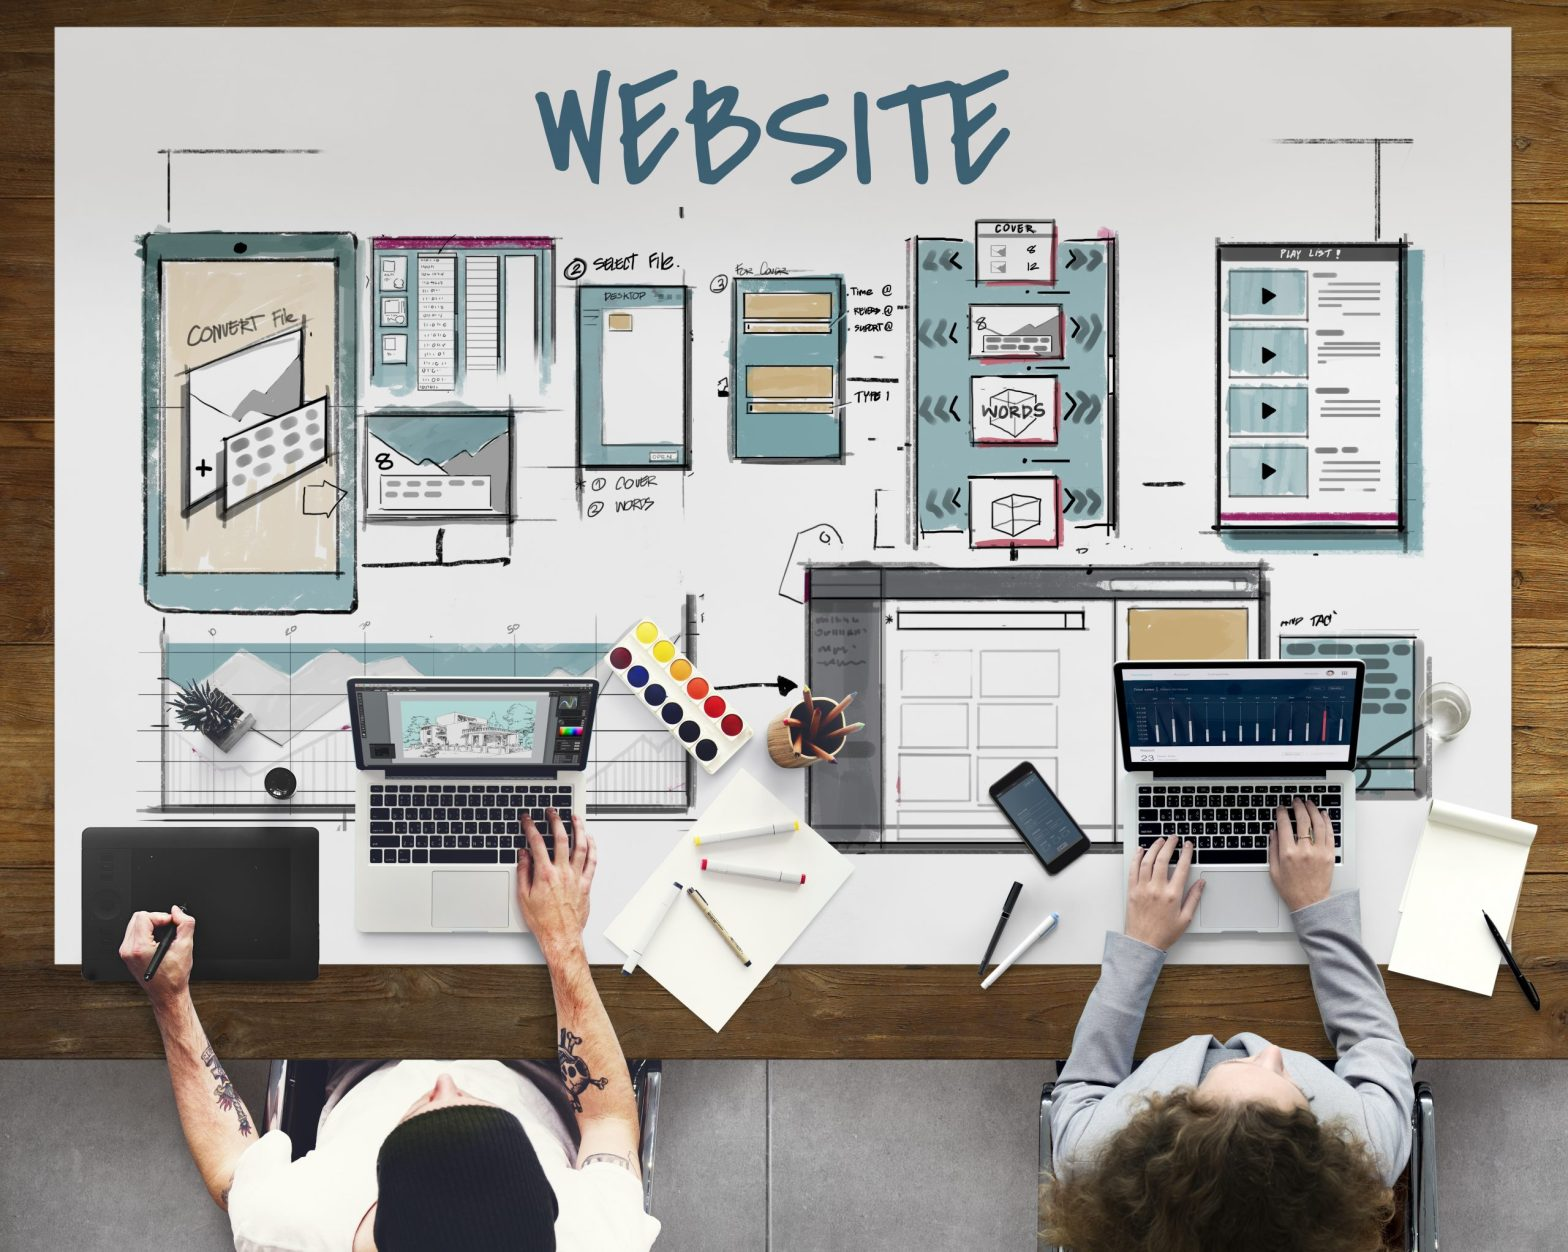 Custom website design is a multistep process that must be organized